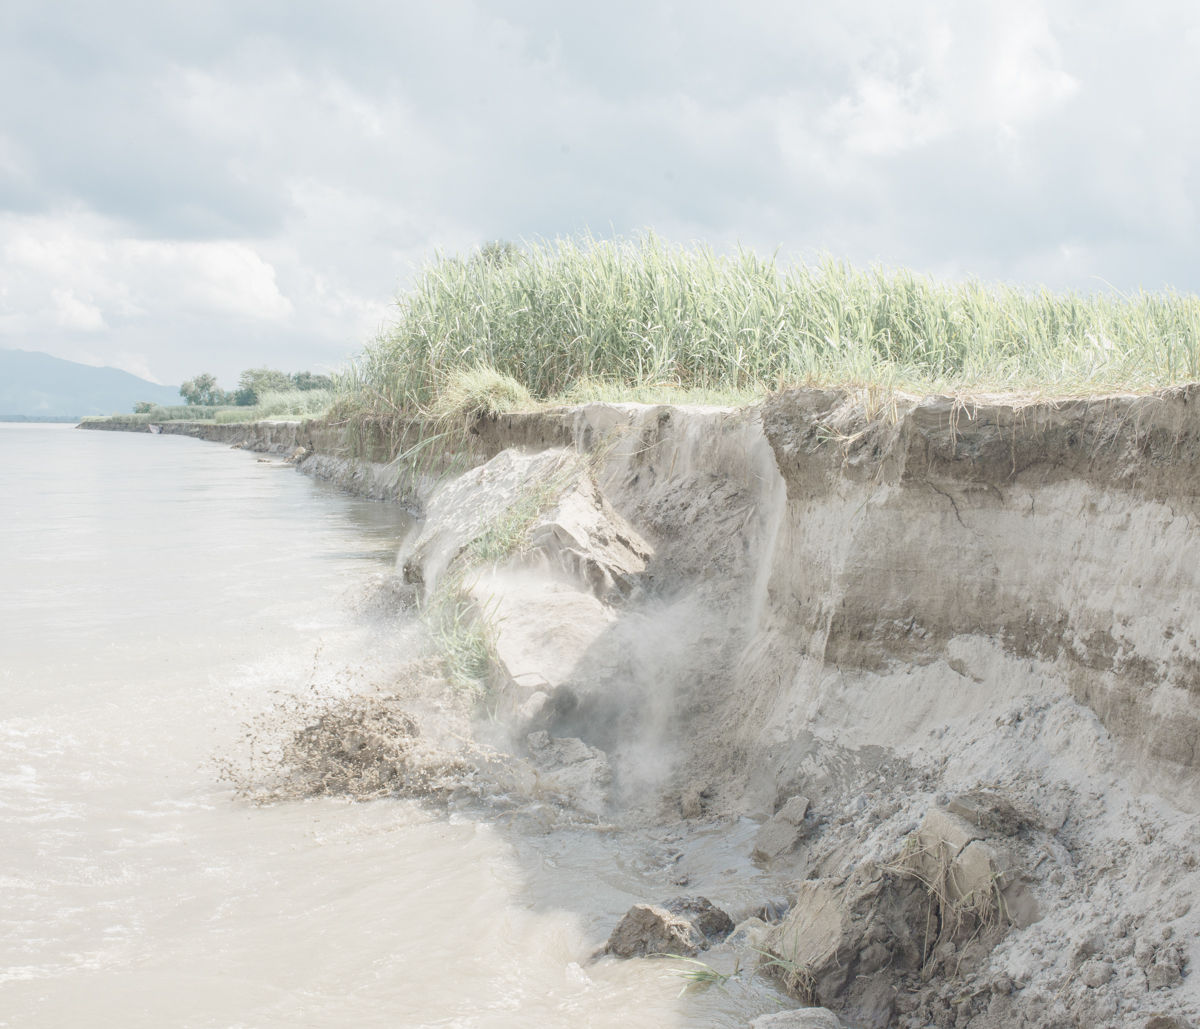 Erosion is a very common scene during the monsoon and even when the water level subsides. People say that around 100 m of farm land has been breached by the river this year alone.